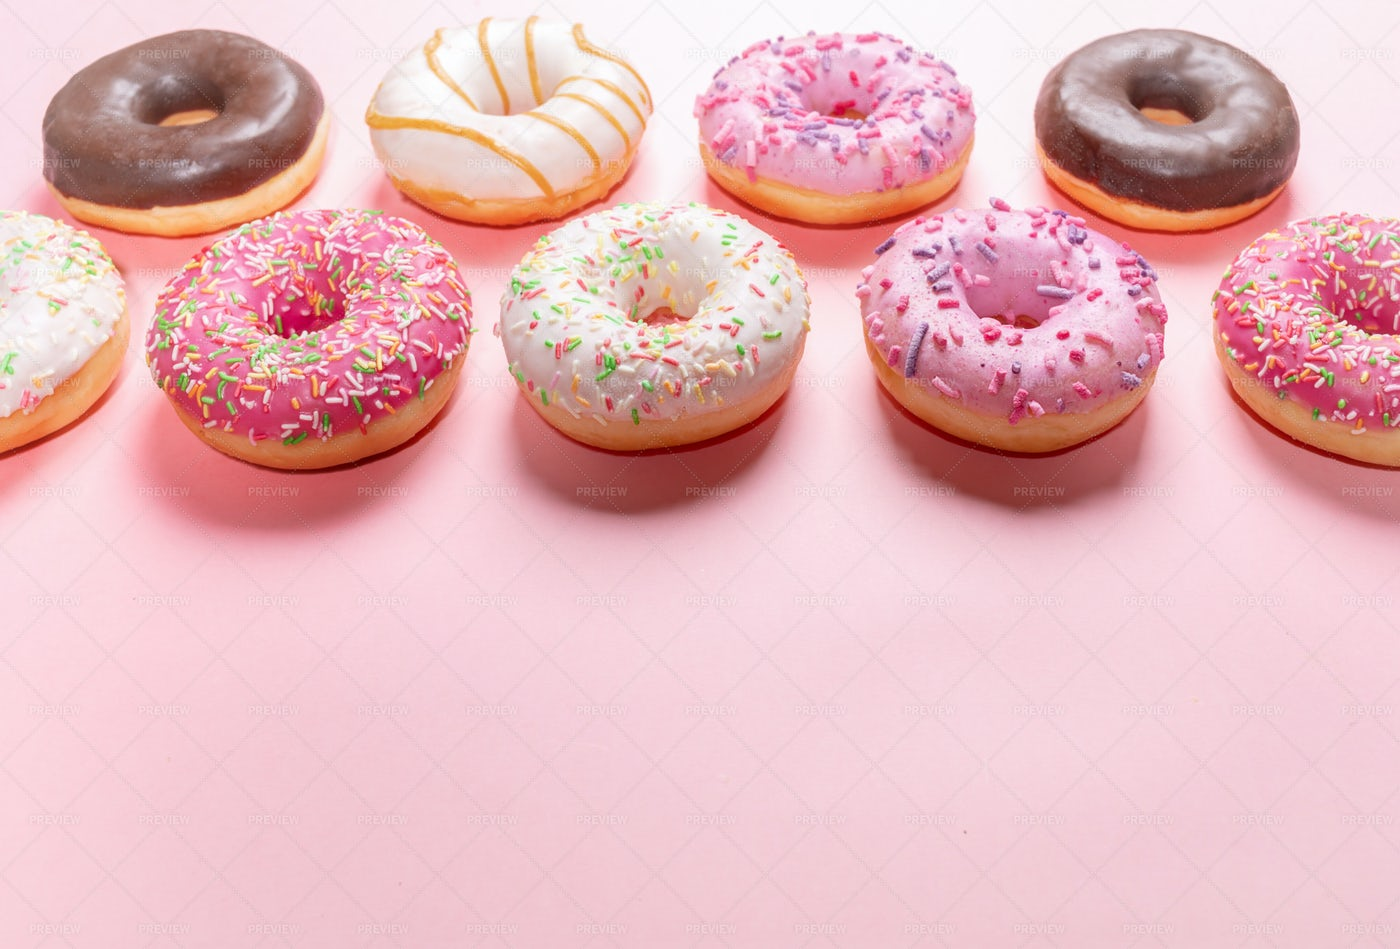 Doughnuts On Pink With Copy Space.: Stock Photos